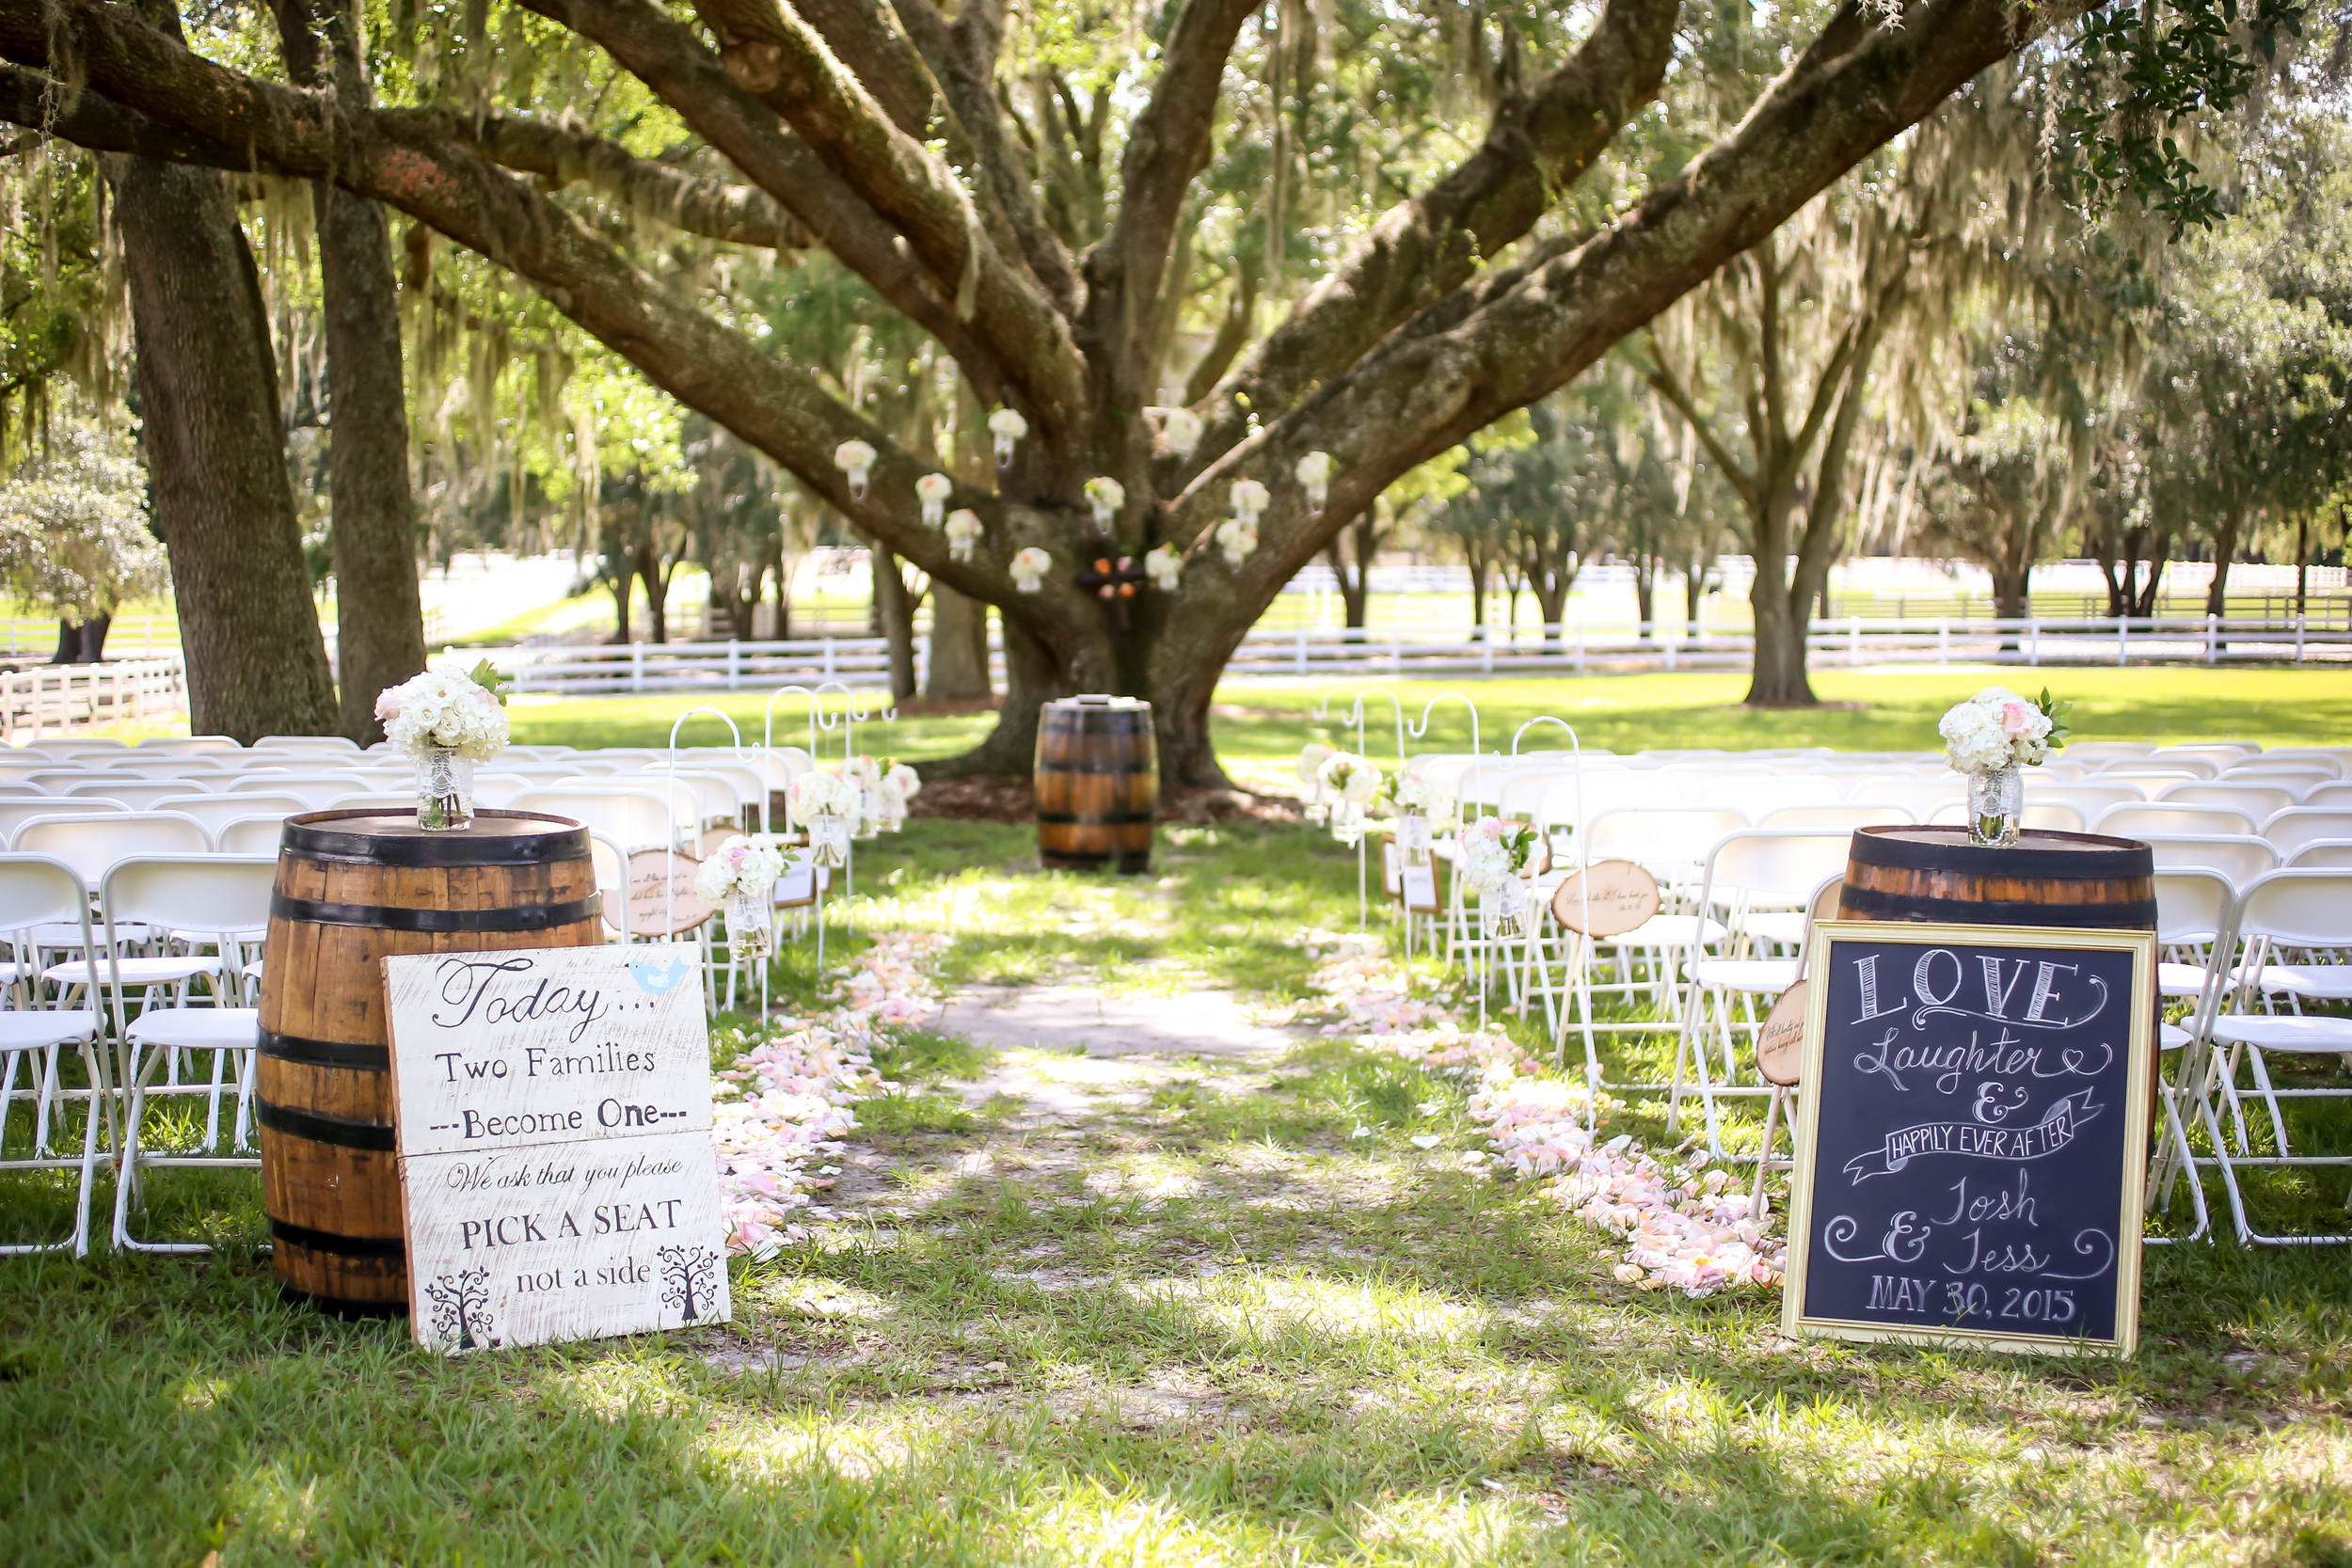 The ceremony took place under the towering branches of a mature Great Oak tree